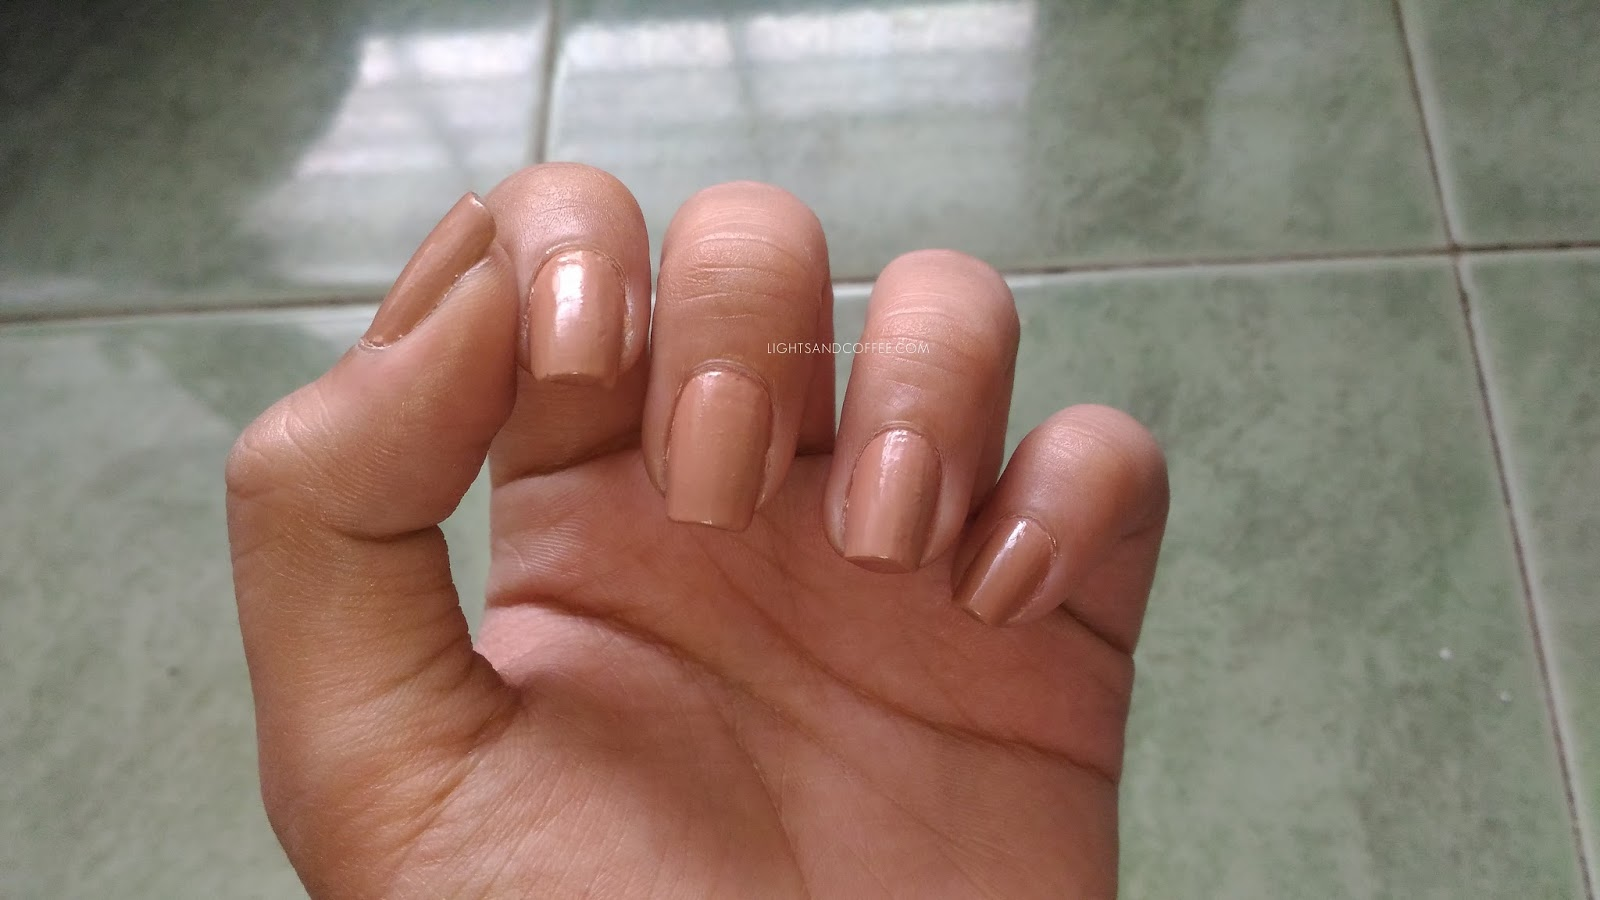 Nails with Gel Look Top Coat Natural Lightning